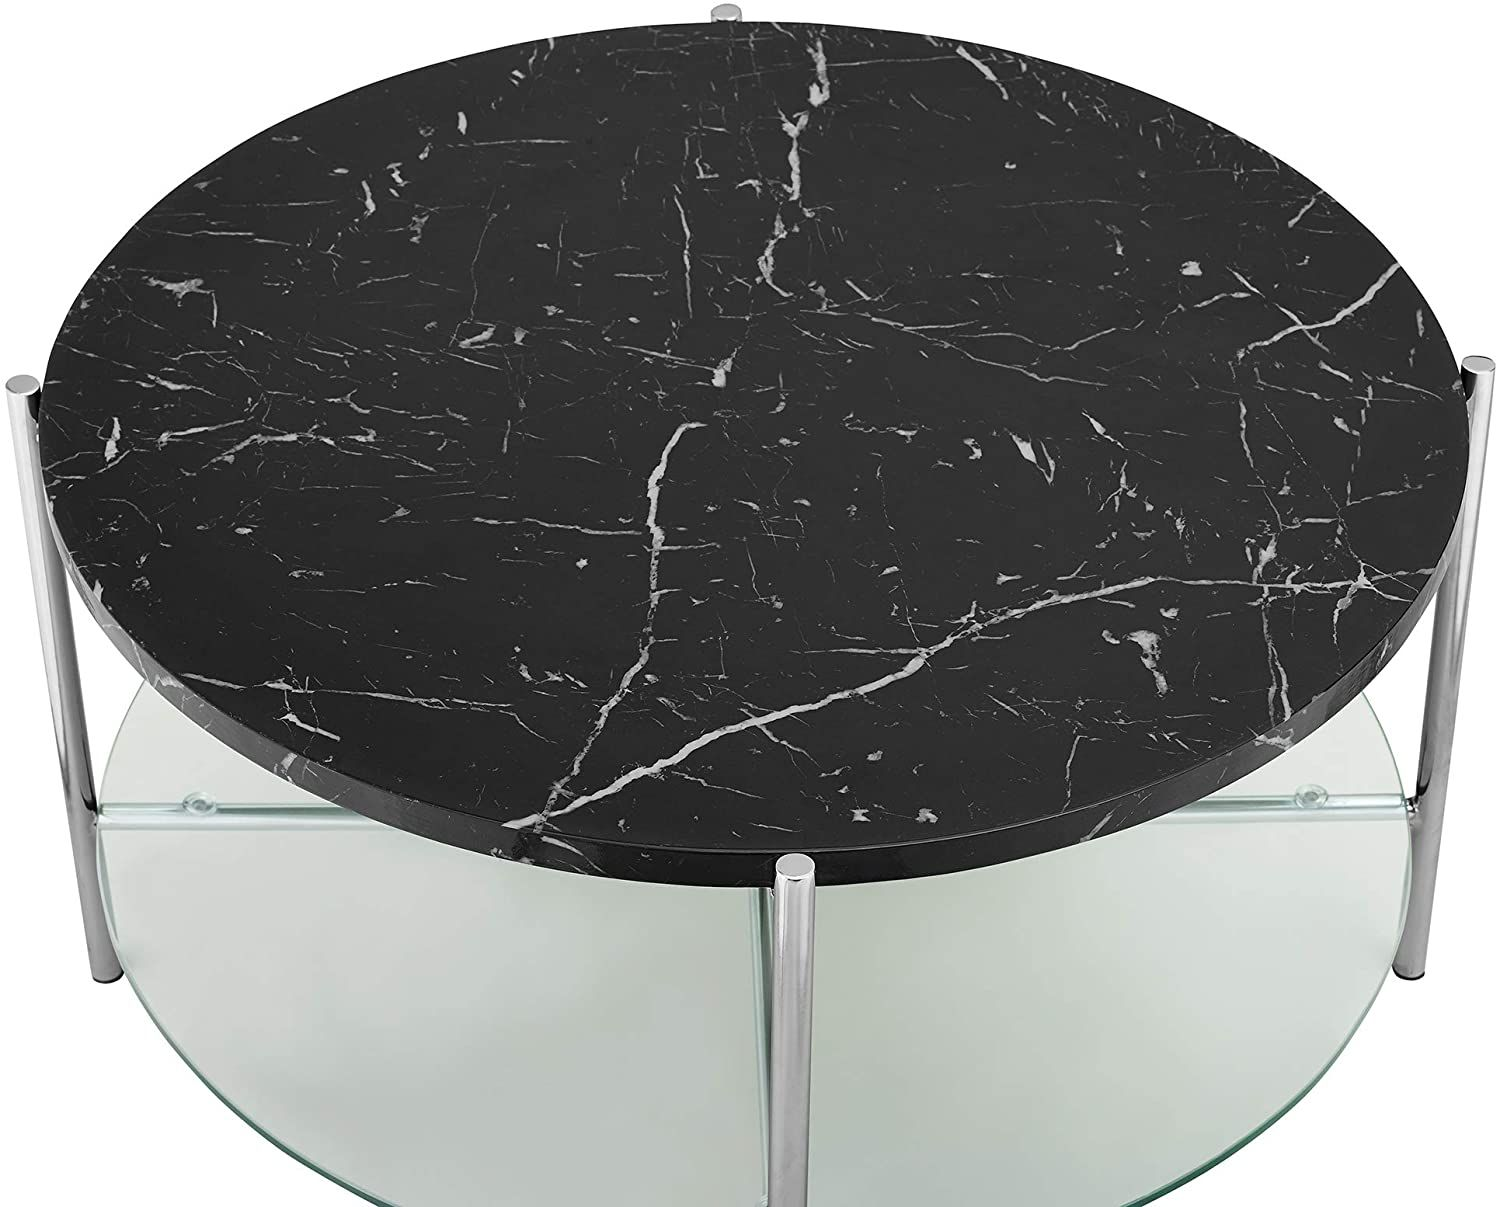 Modern Metal Round Coffee Accent Table Living Room 32 Inch Black Marble Living Room Accent Tables Black Marble Accent Table [ 1207 x 1500 Pixel ]